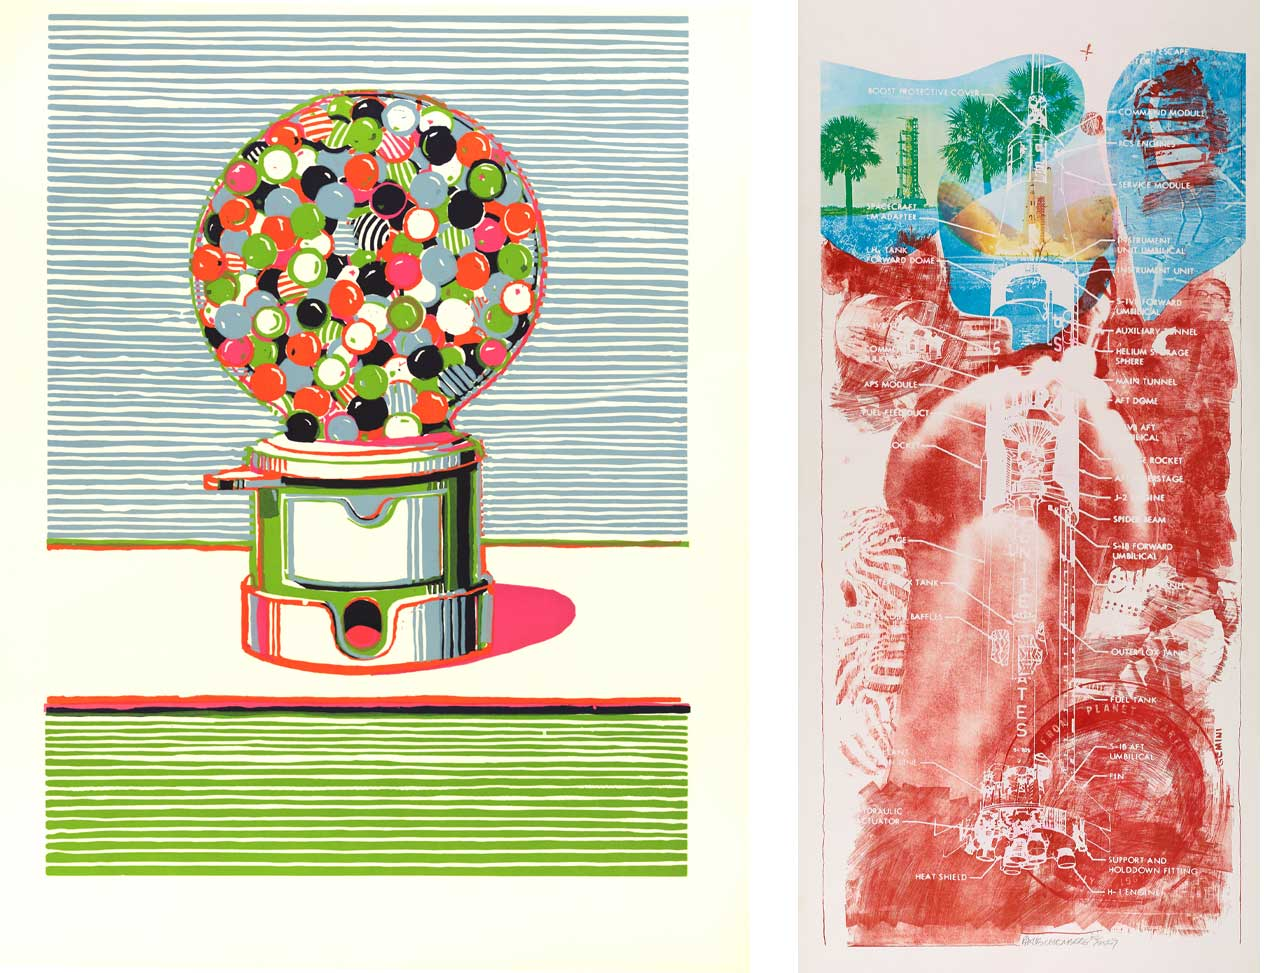 On the left Wayne Thiebaud, Gumball Machine, 1970 and on the right Robert Rauschenberg, Sky Garden, 1970